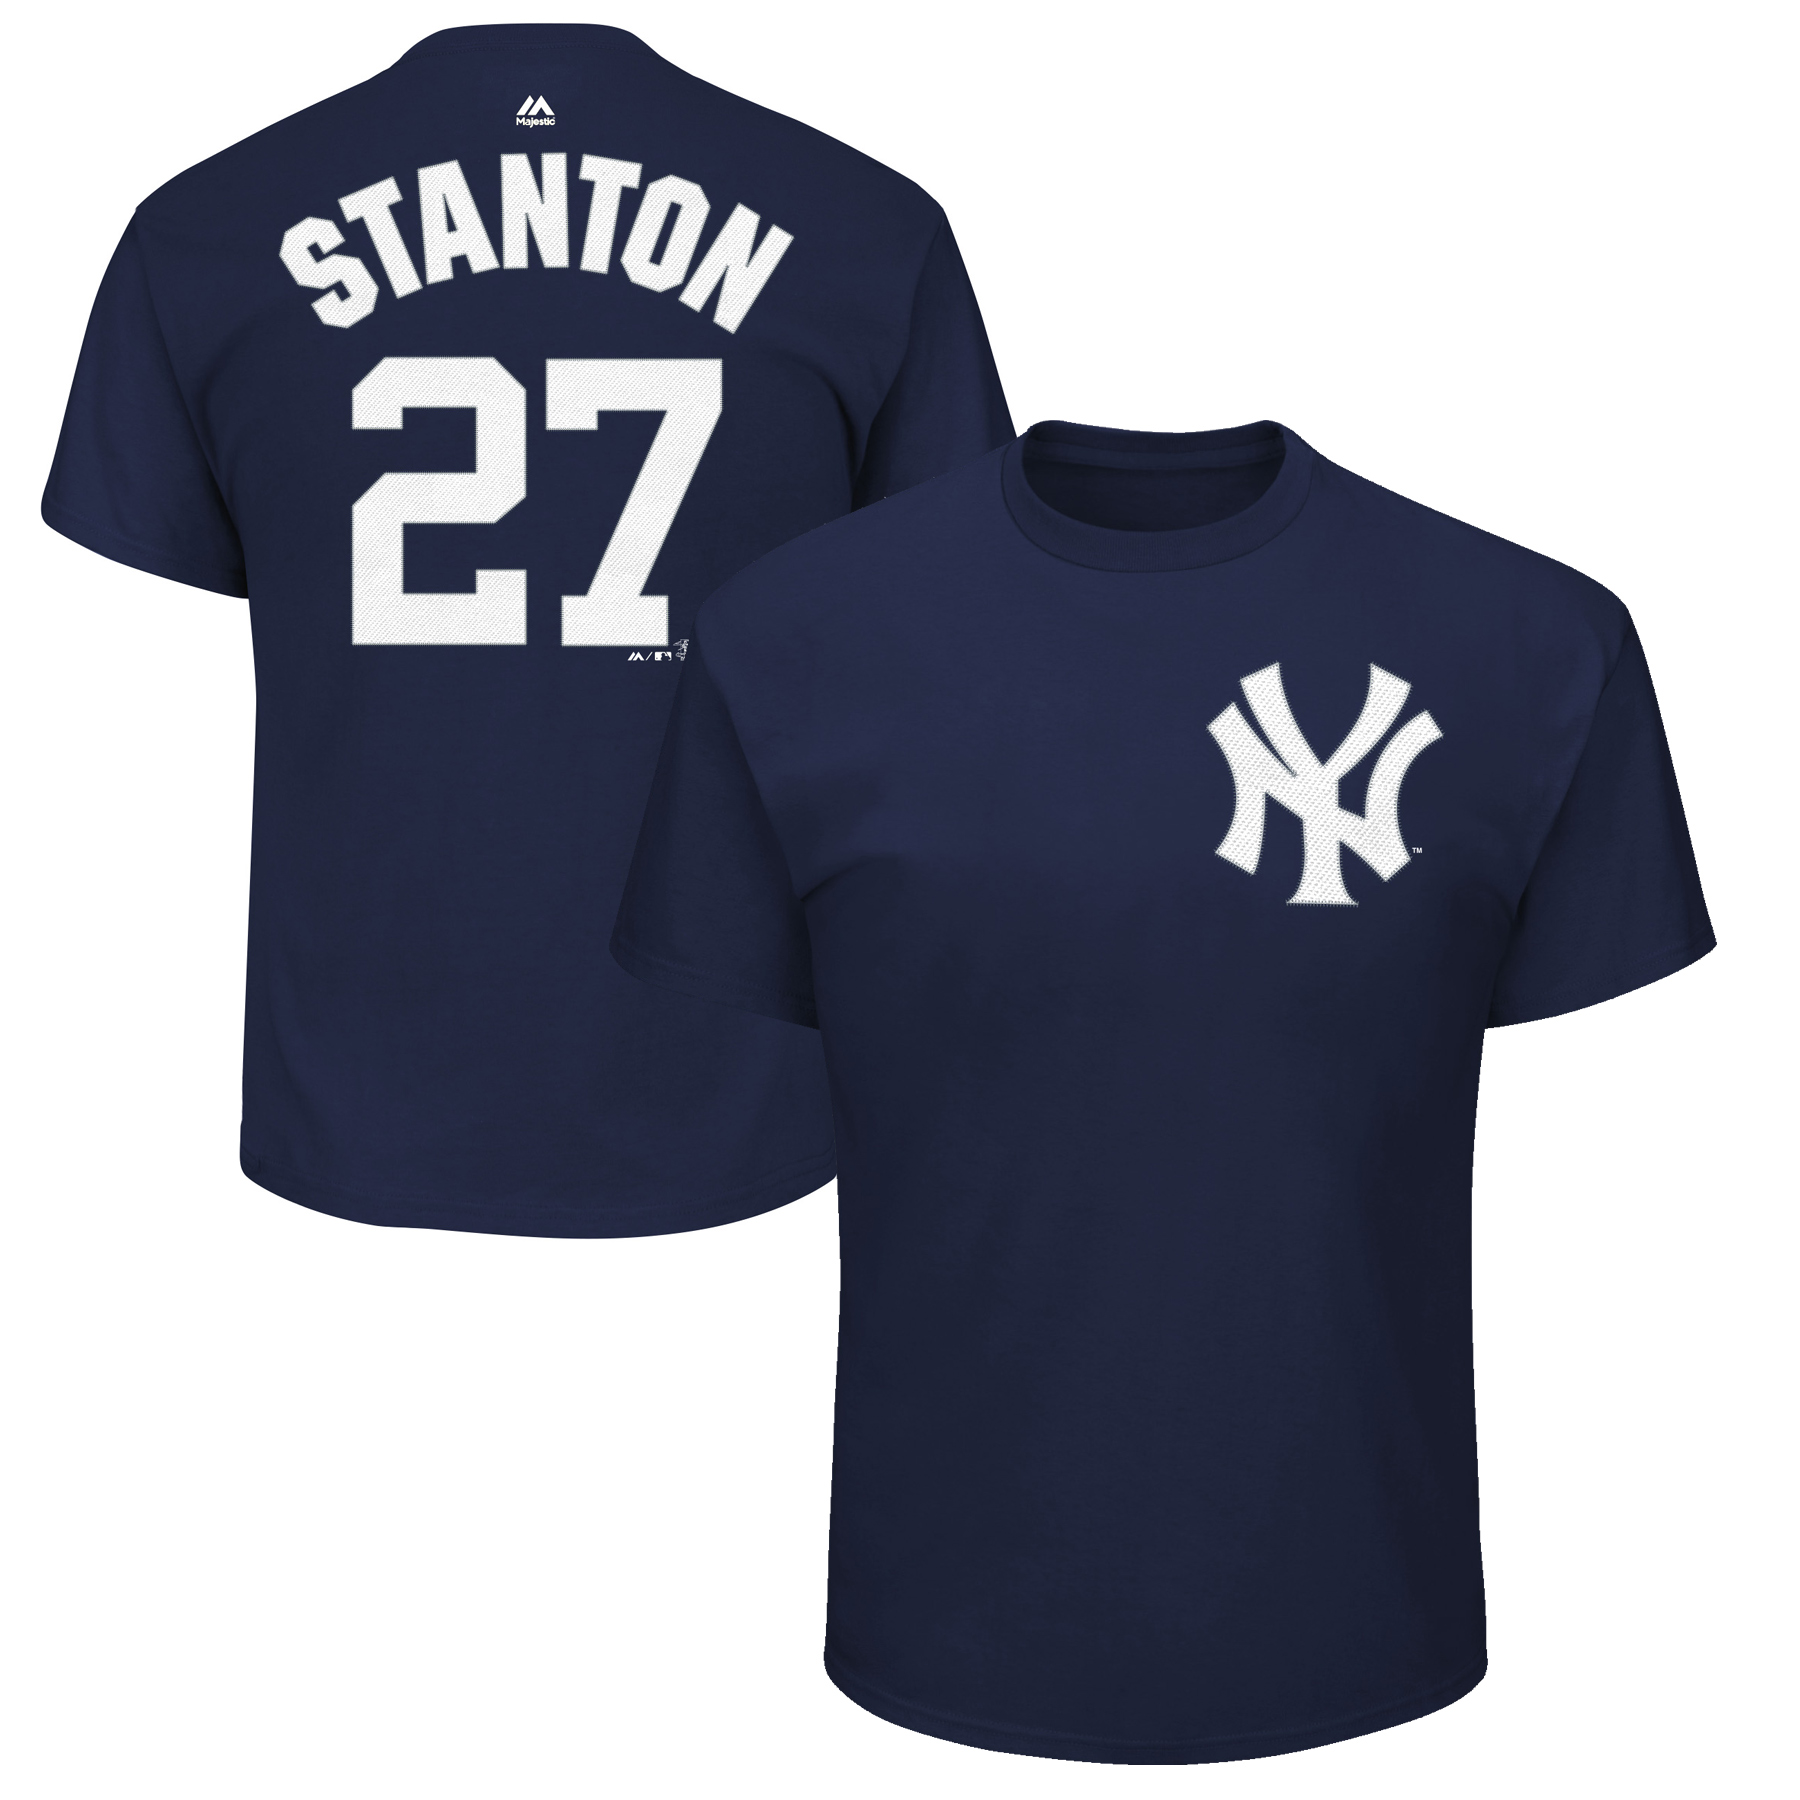 Giancarlo Stanton New York Yankees Majestic Youth Name & Number T-Shirt - Navy